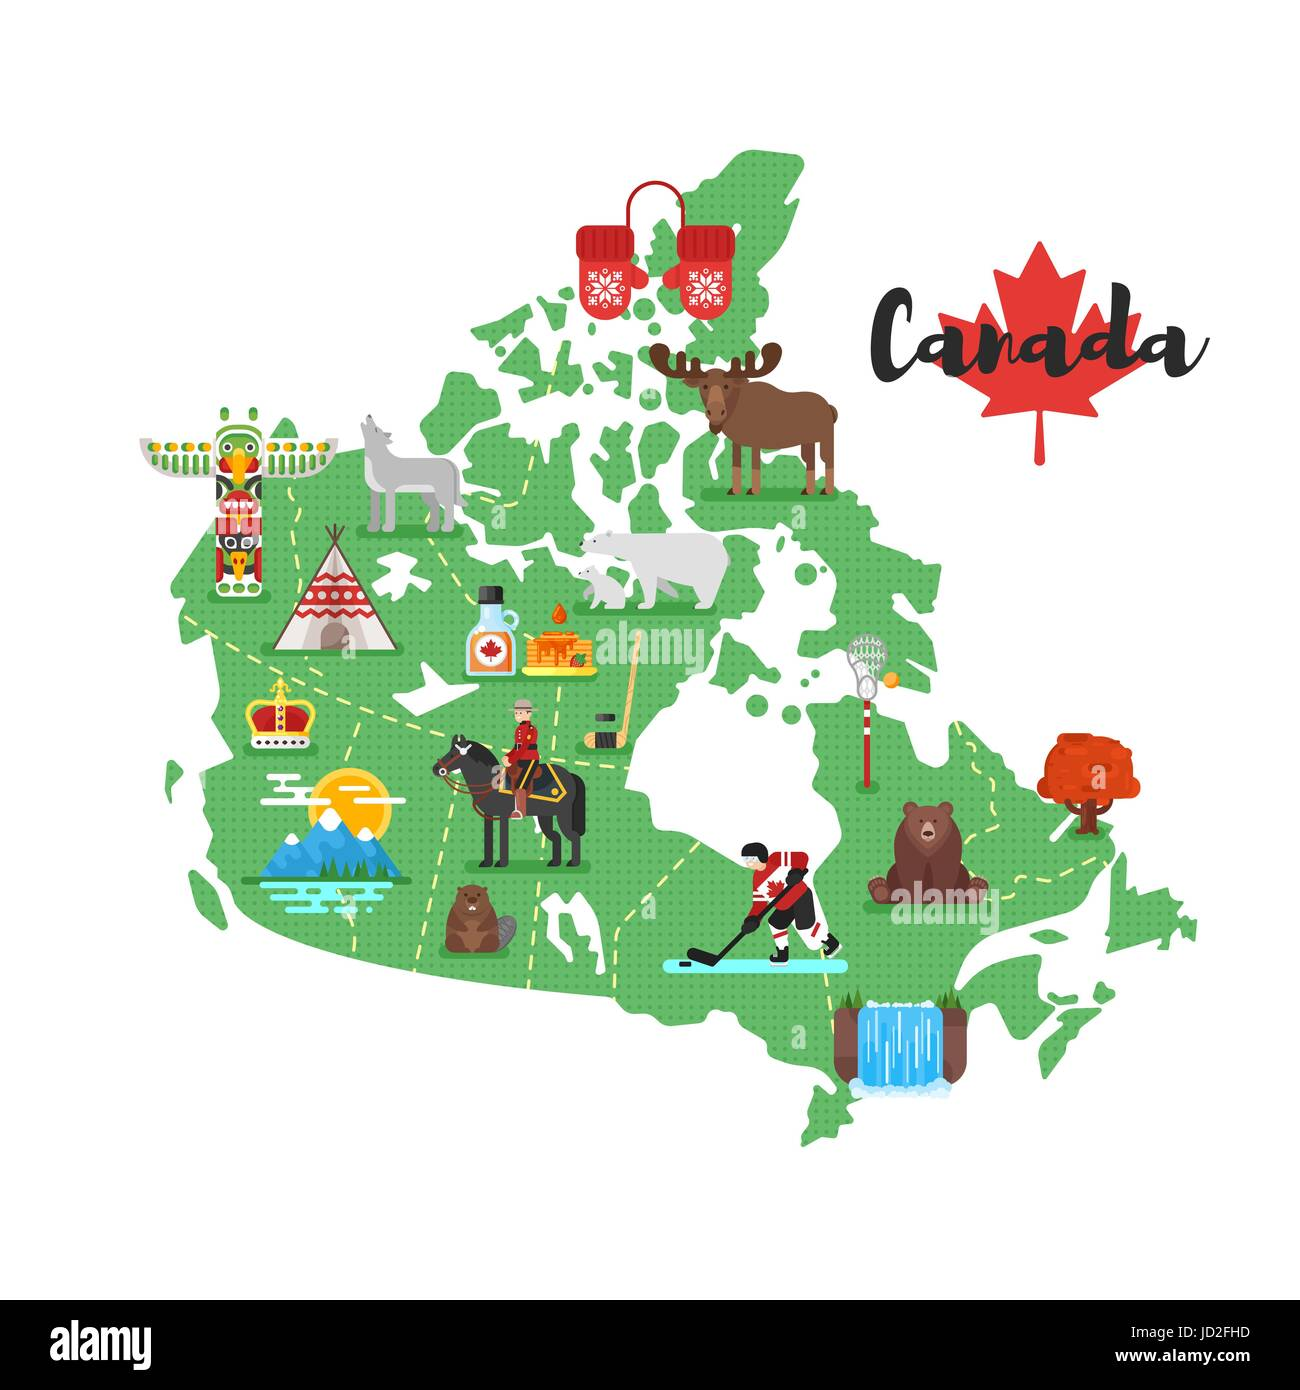 Canada Map With Symbols Vector flat style illustration of Canadian map with Canadian